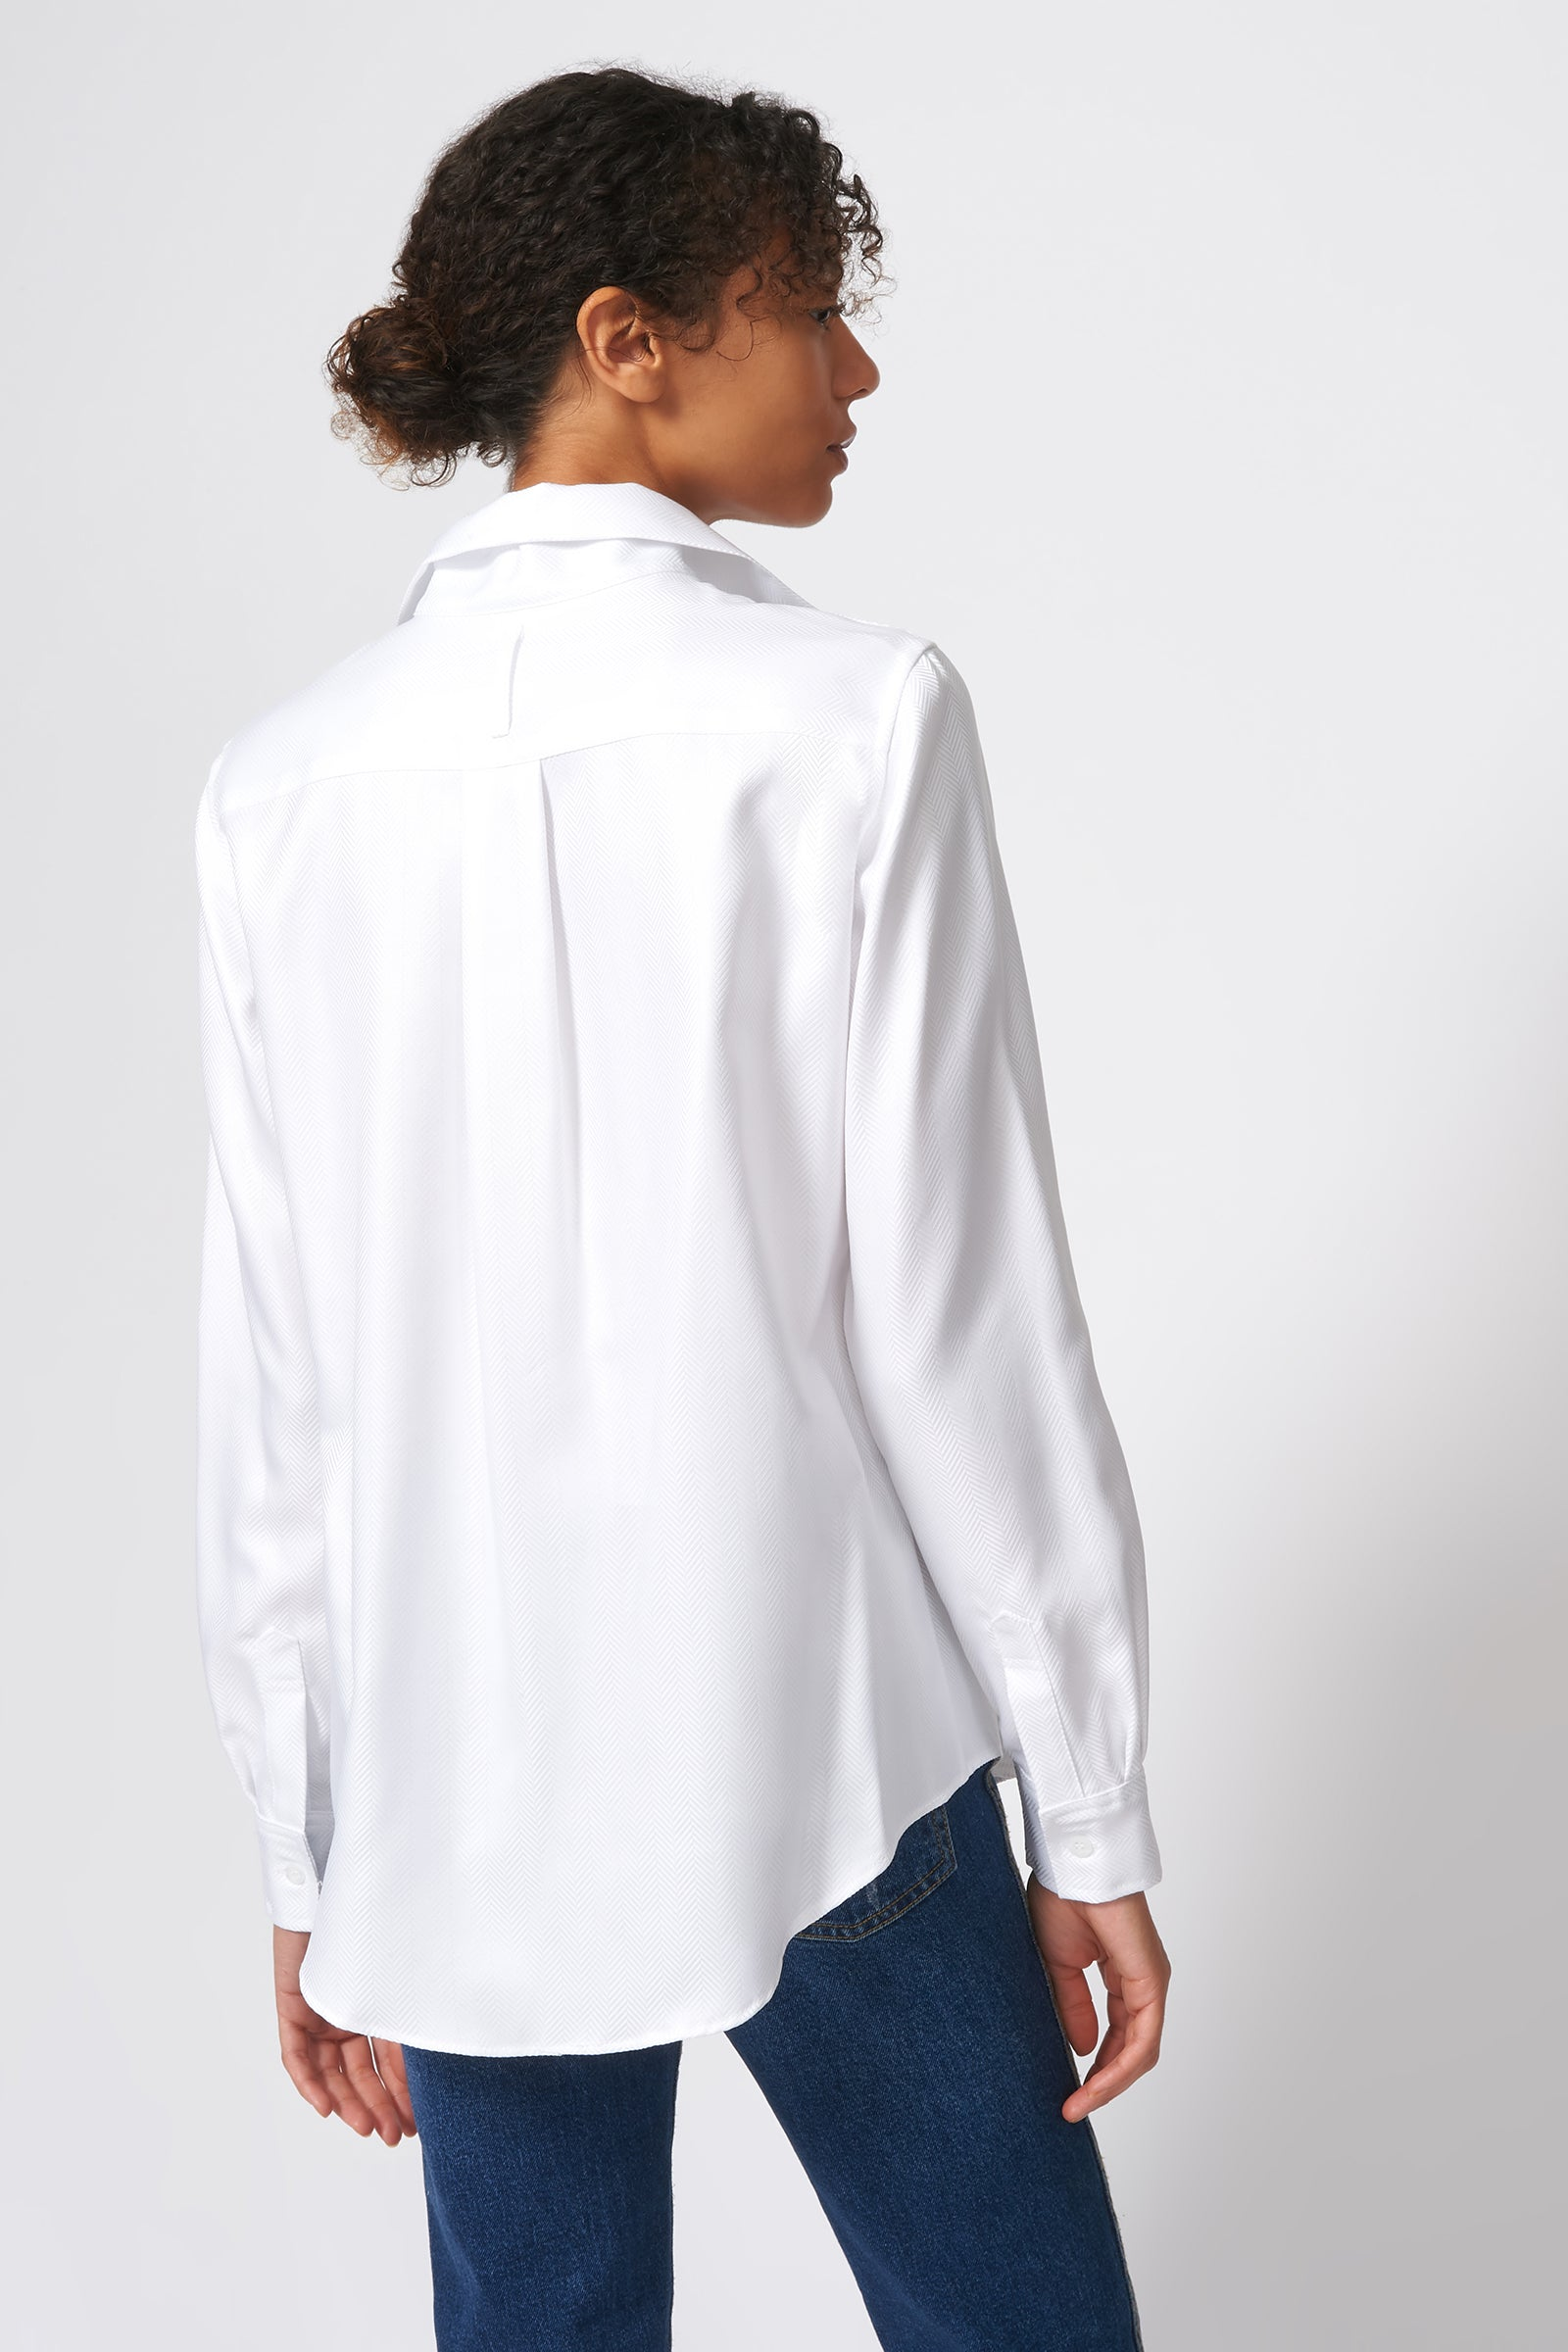 Kal Rieman Ginna Box Pleat Shirt in White Herringbone on Model Back View